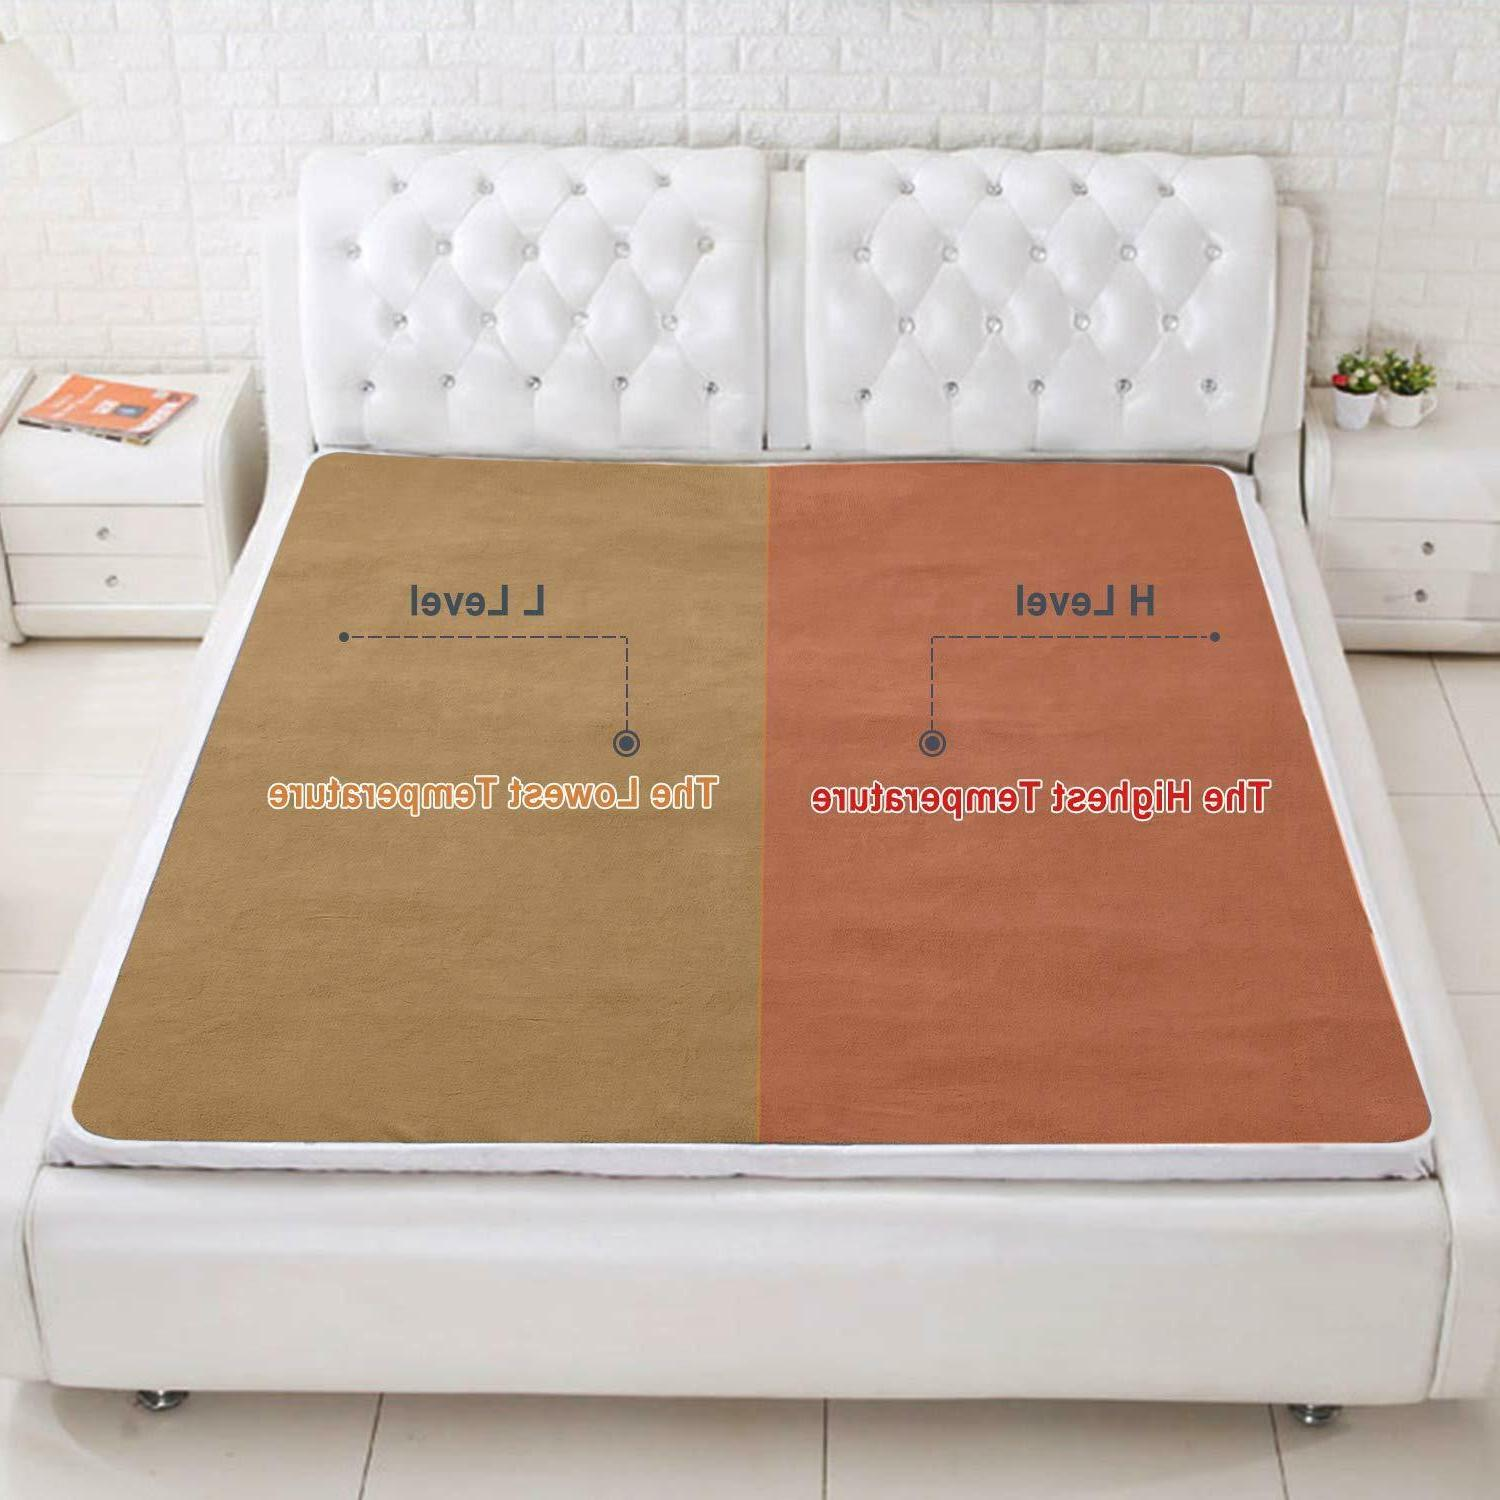 Heated Blanket Dual Timer, Queen